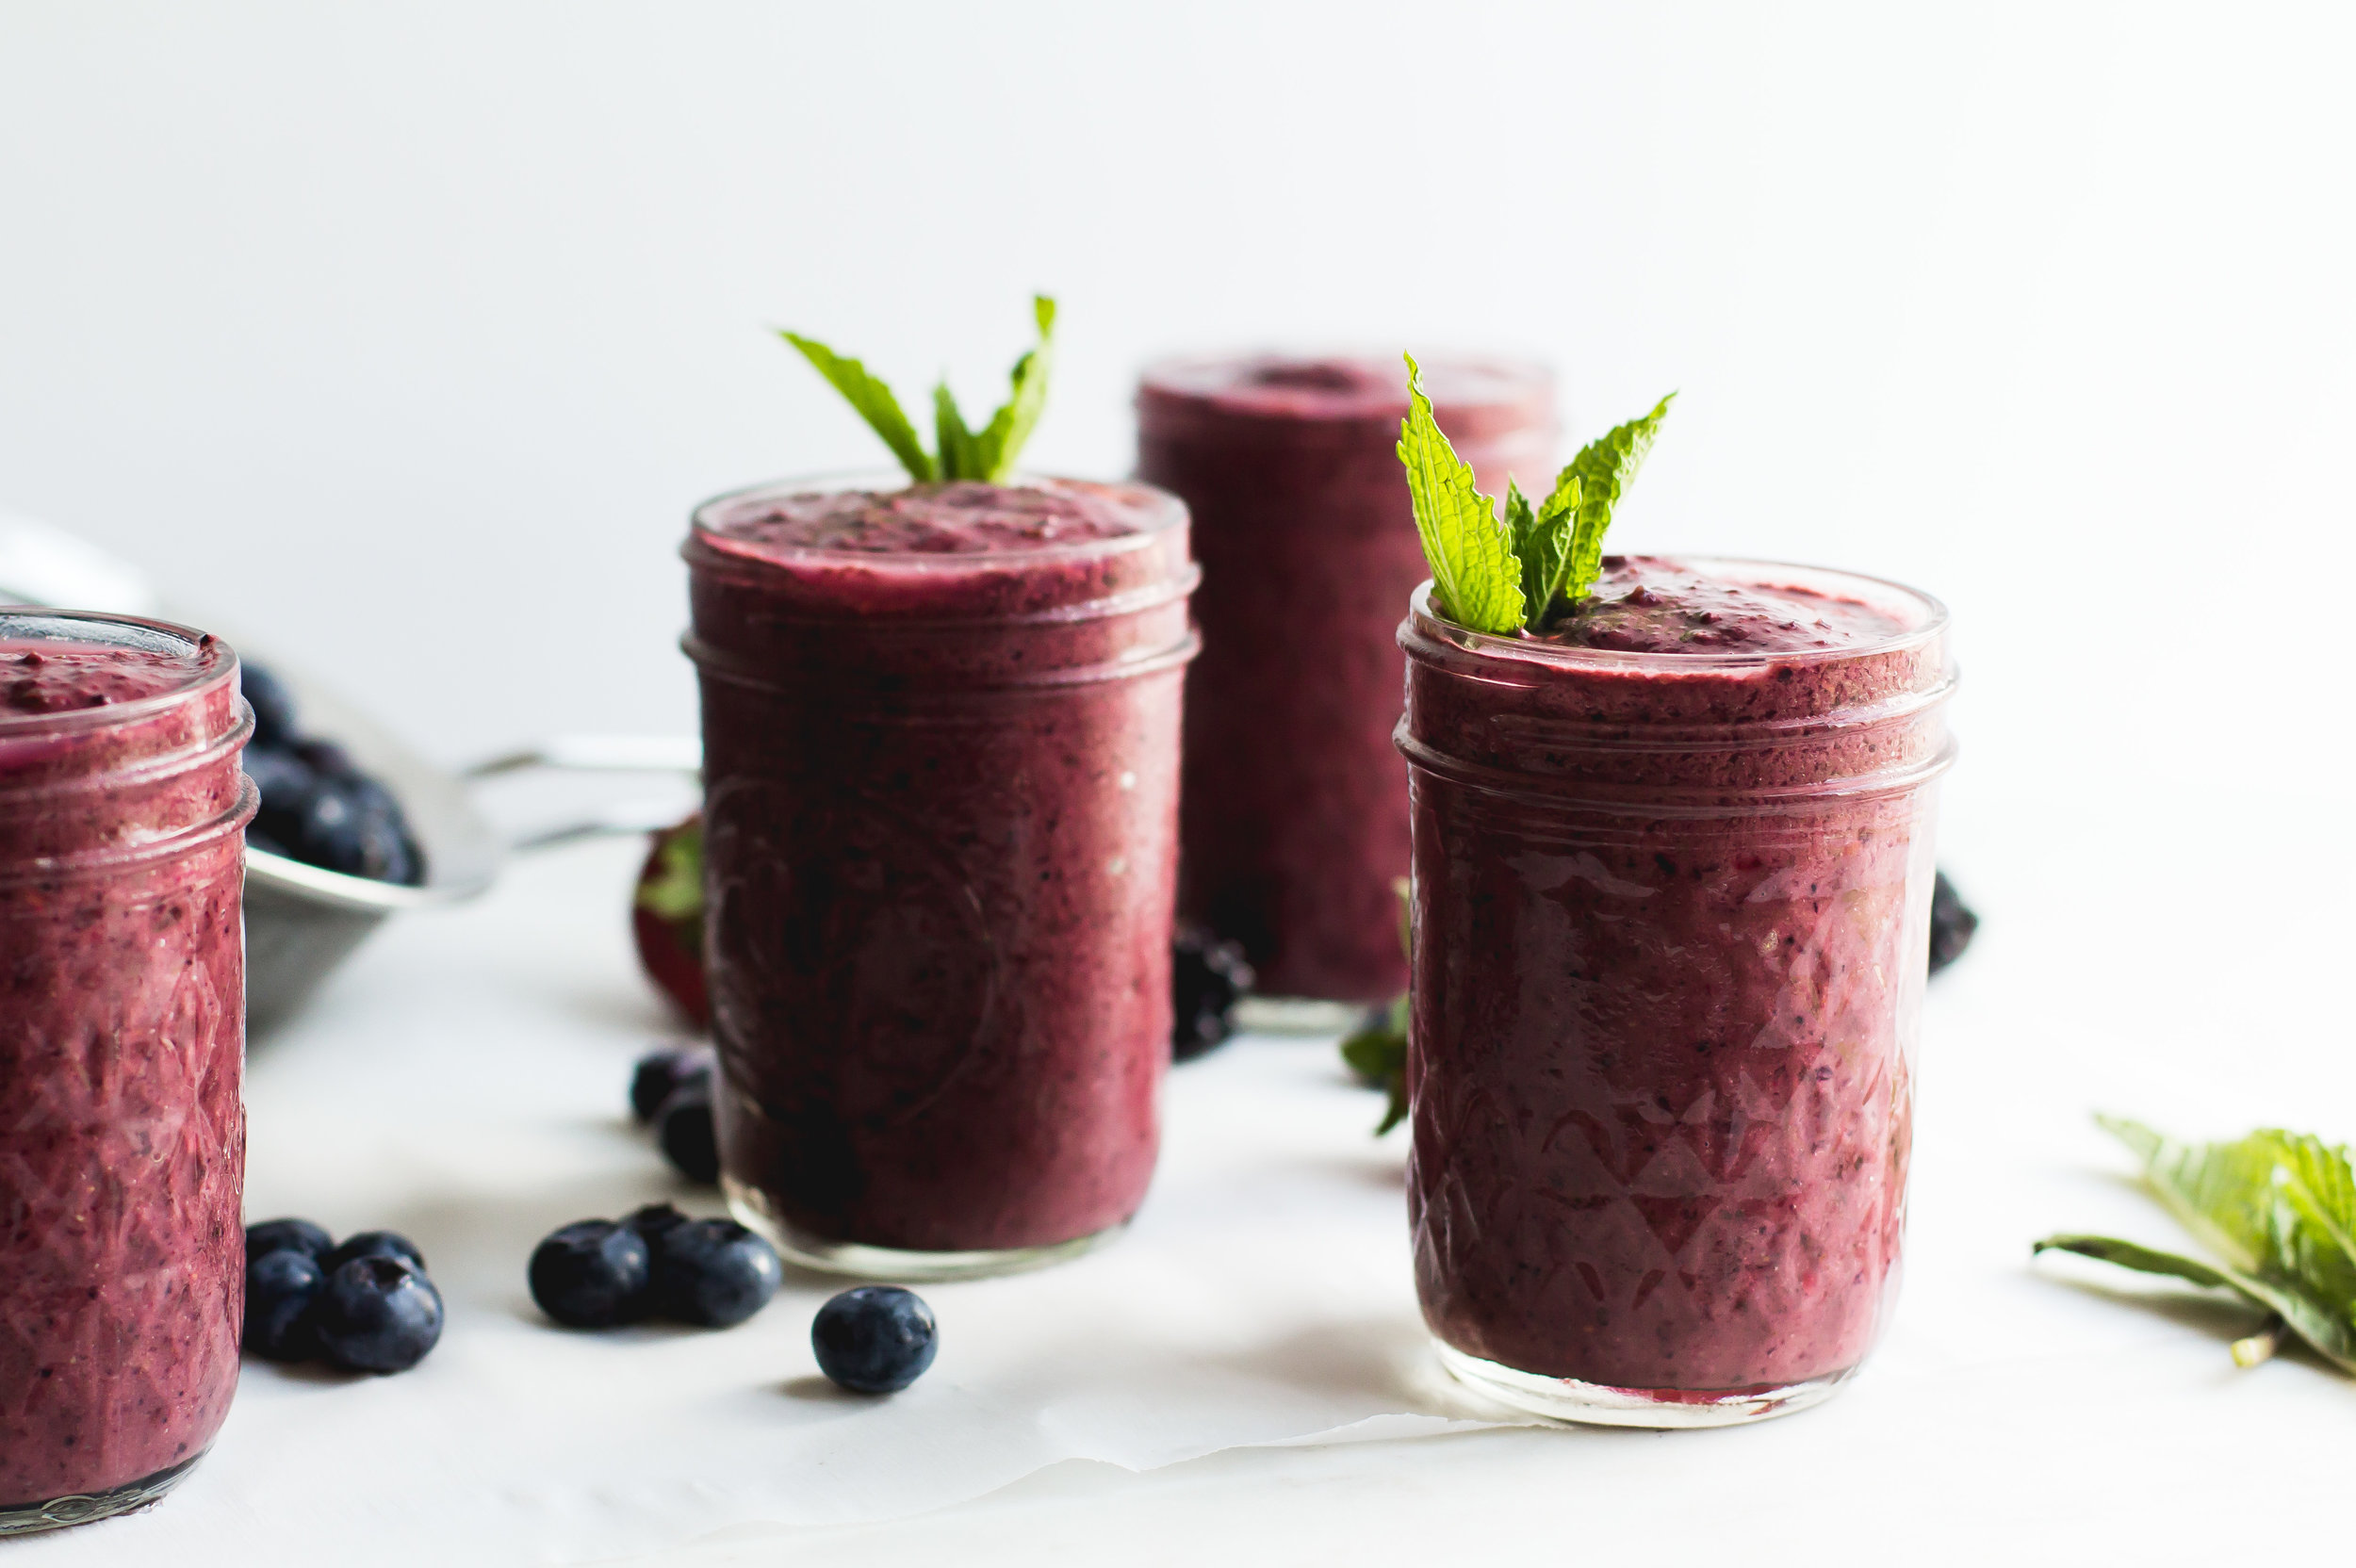 Mixed Berry + Cocoa Smoothie - Sarah J. Hauser